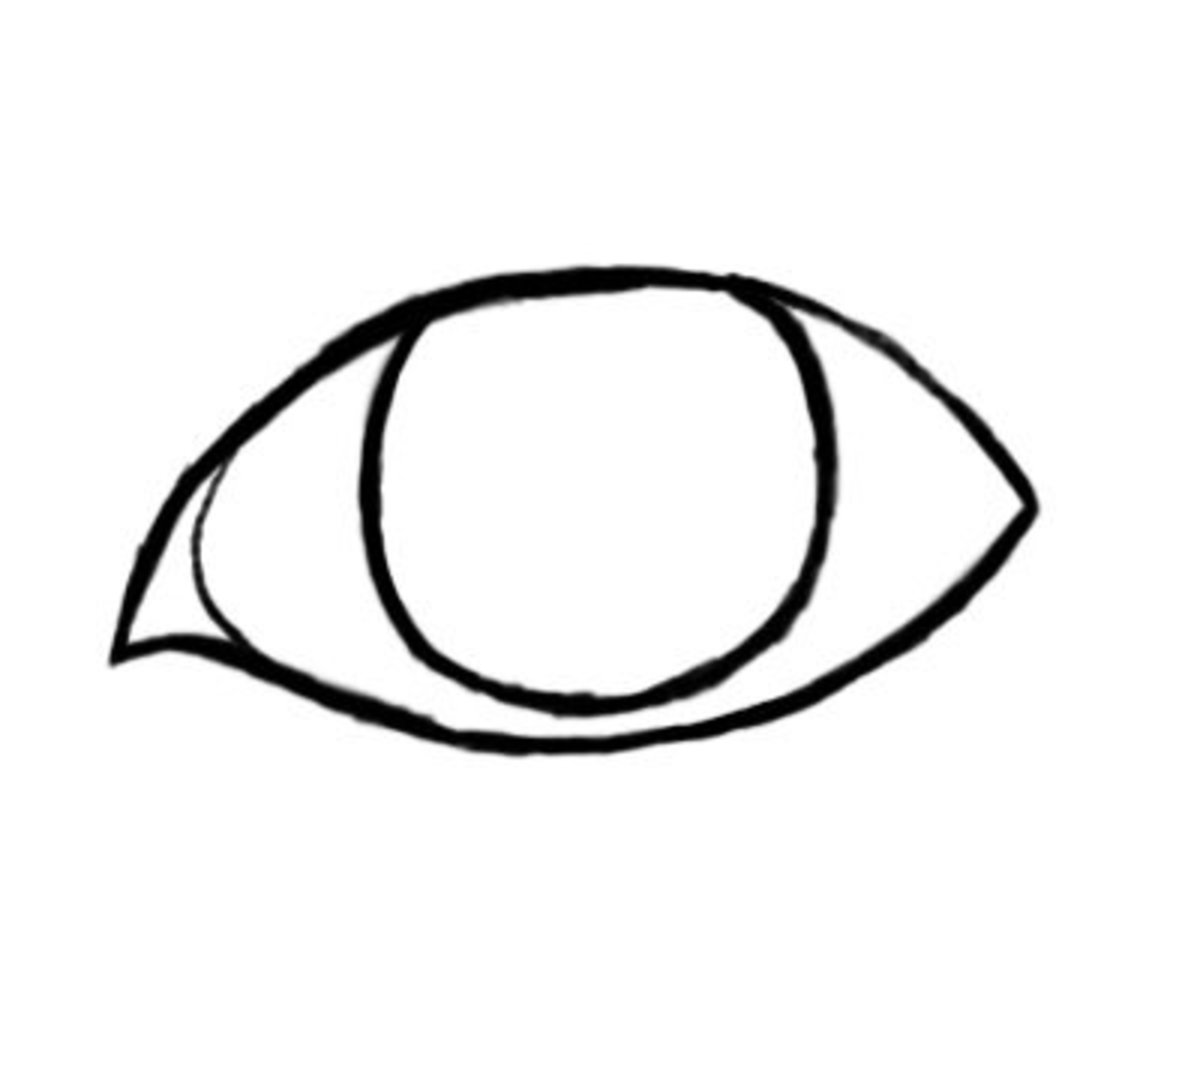 Draw the eye lens and the corner of the left eye similar to the way it lookshere.